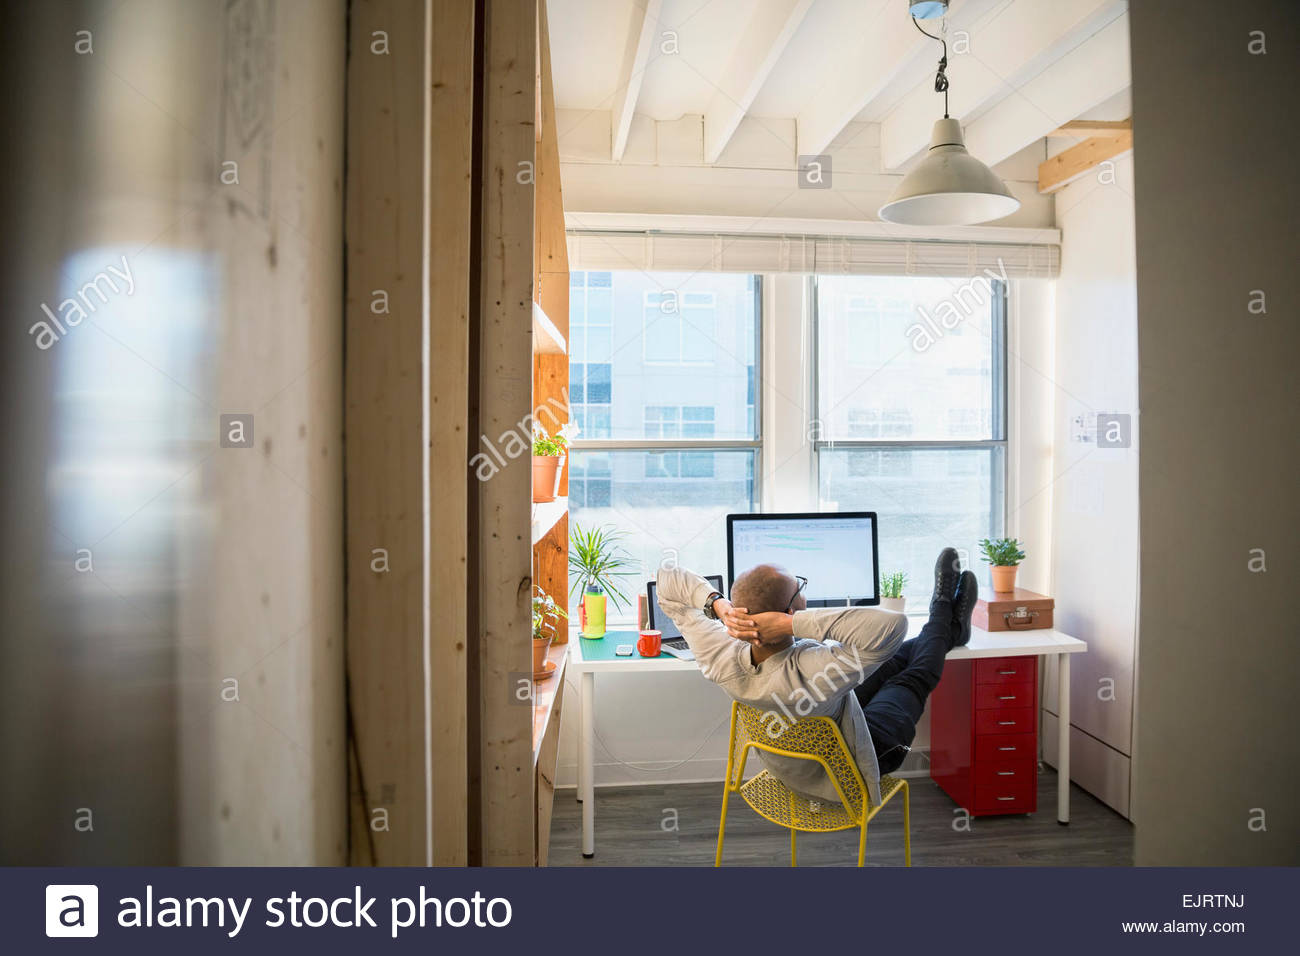 Designer with feet up on office desk - Stock Image